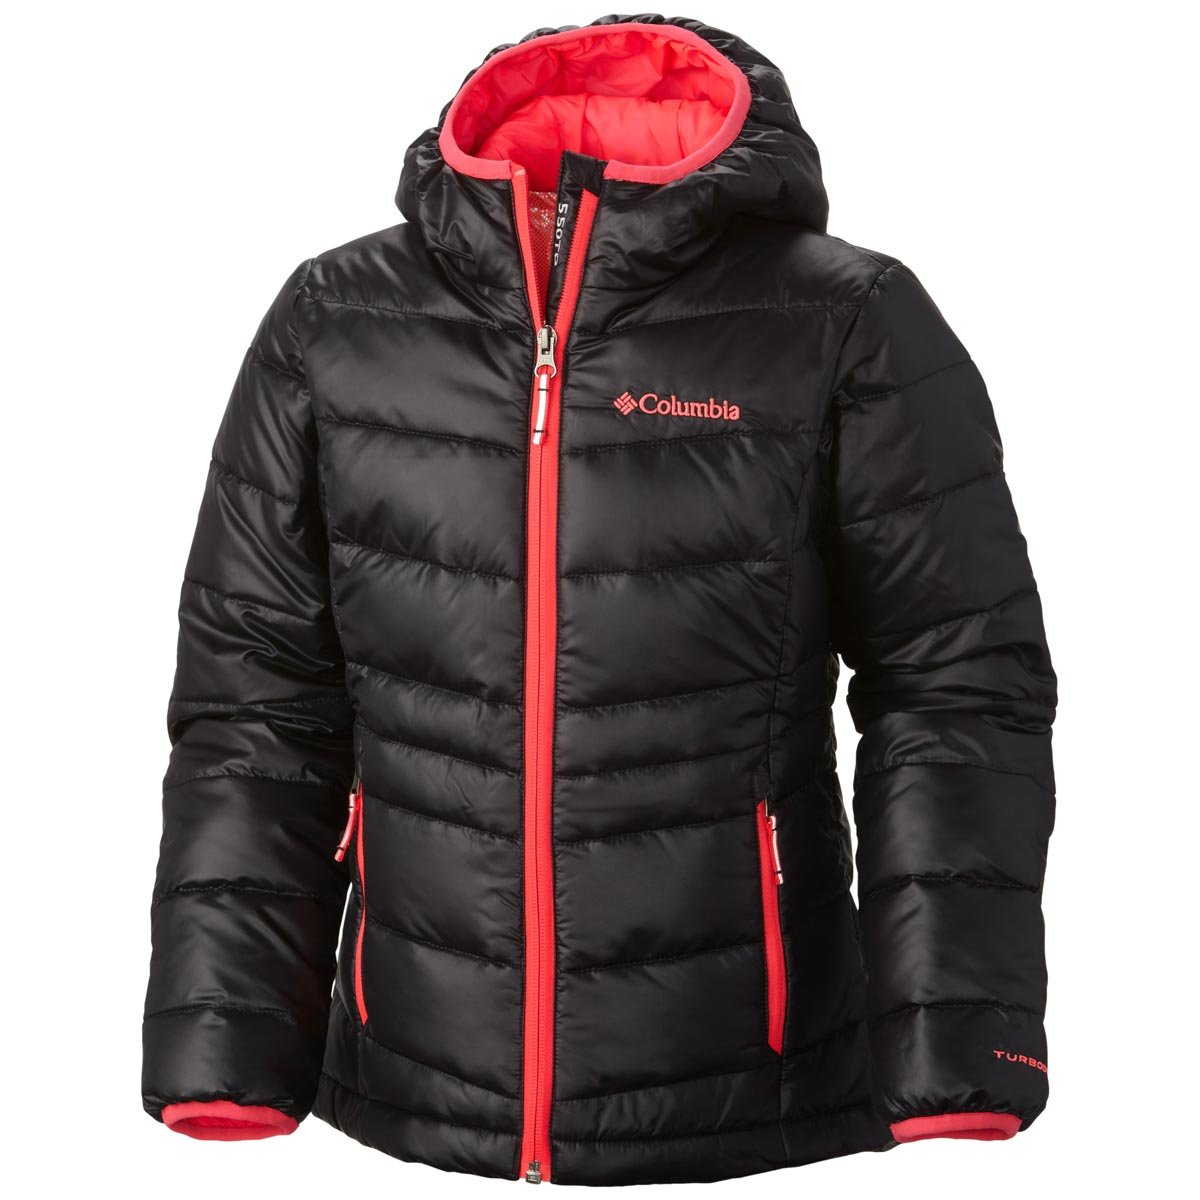 Columbia Girls Gold 550 TurboDown Hooded Down Jacket Columbia (Sporting Goods) 1624541